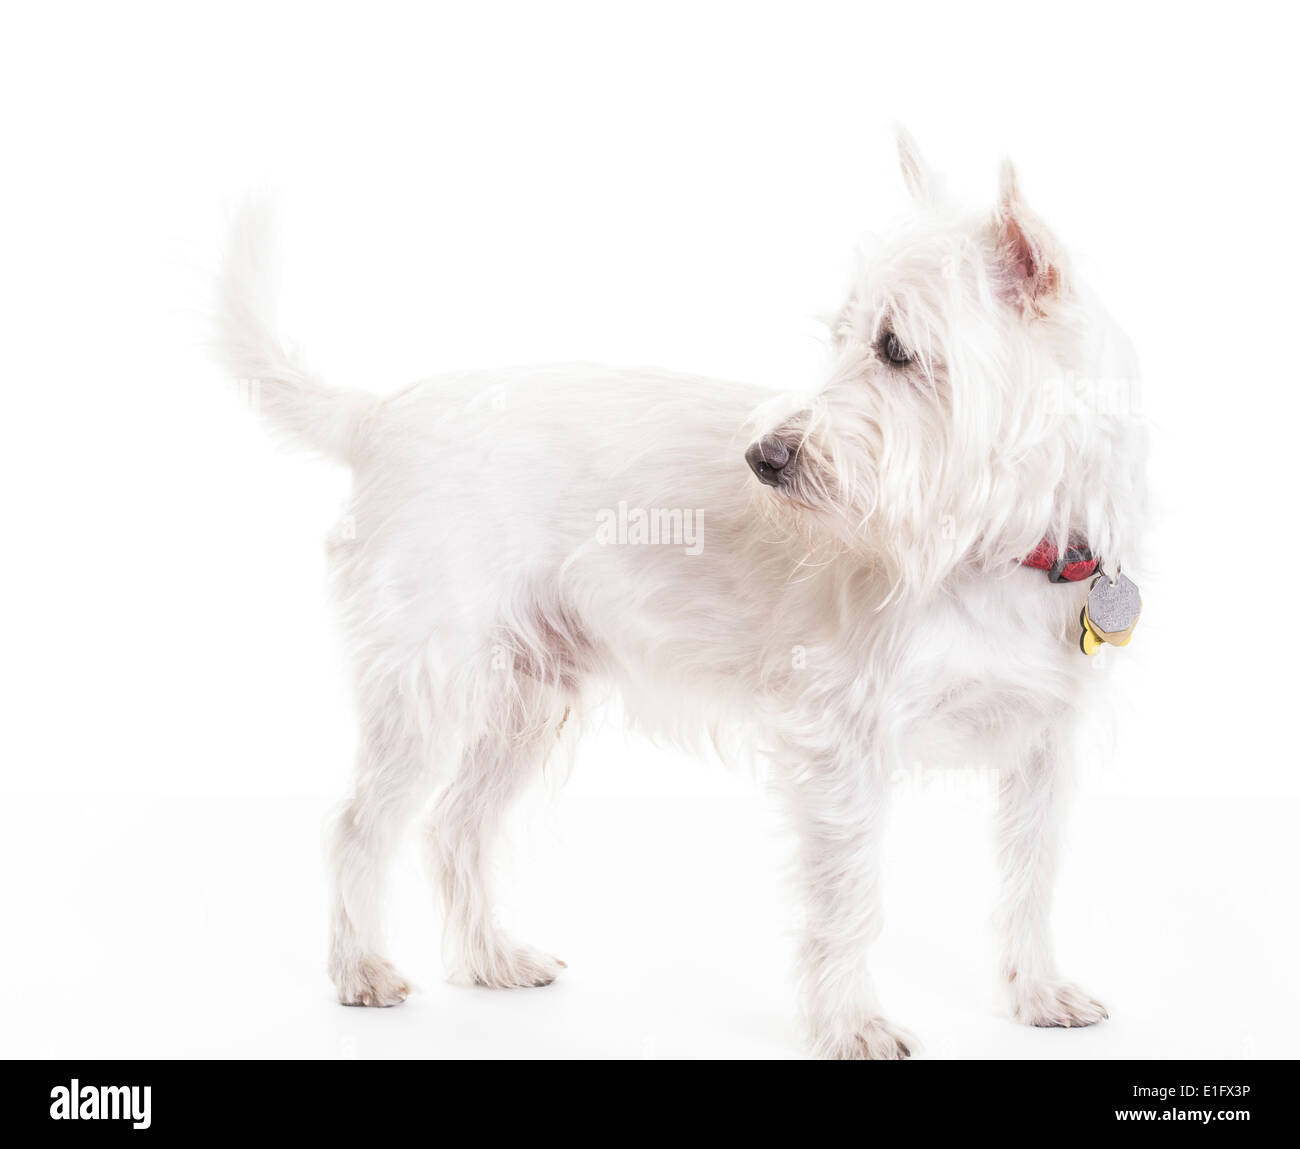 A cute West Highlands White Terrier or Westie puppy dog. - Stock Image